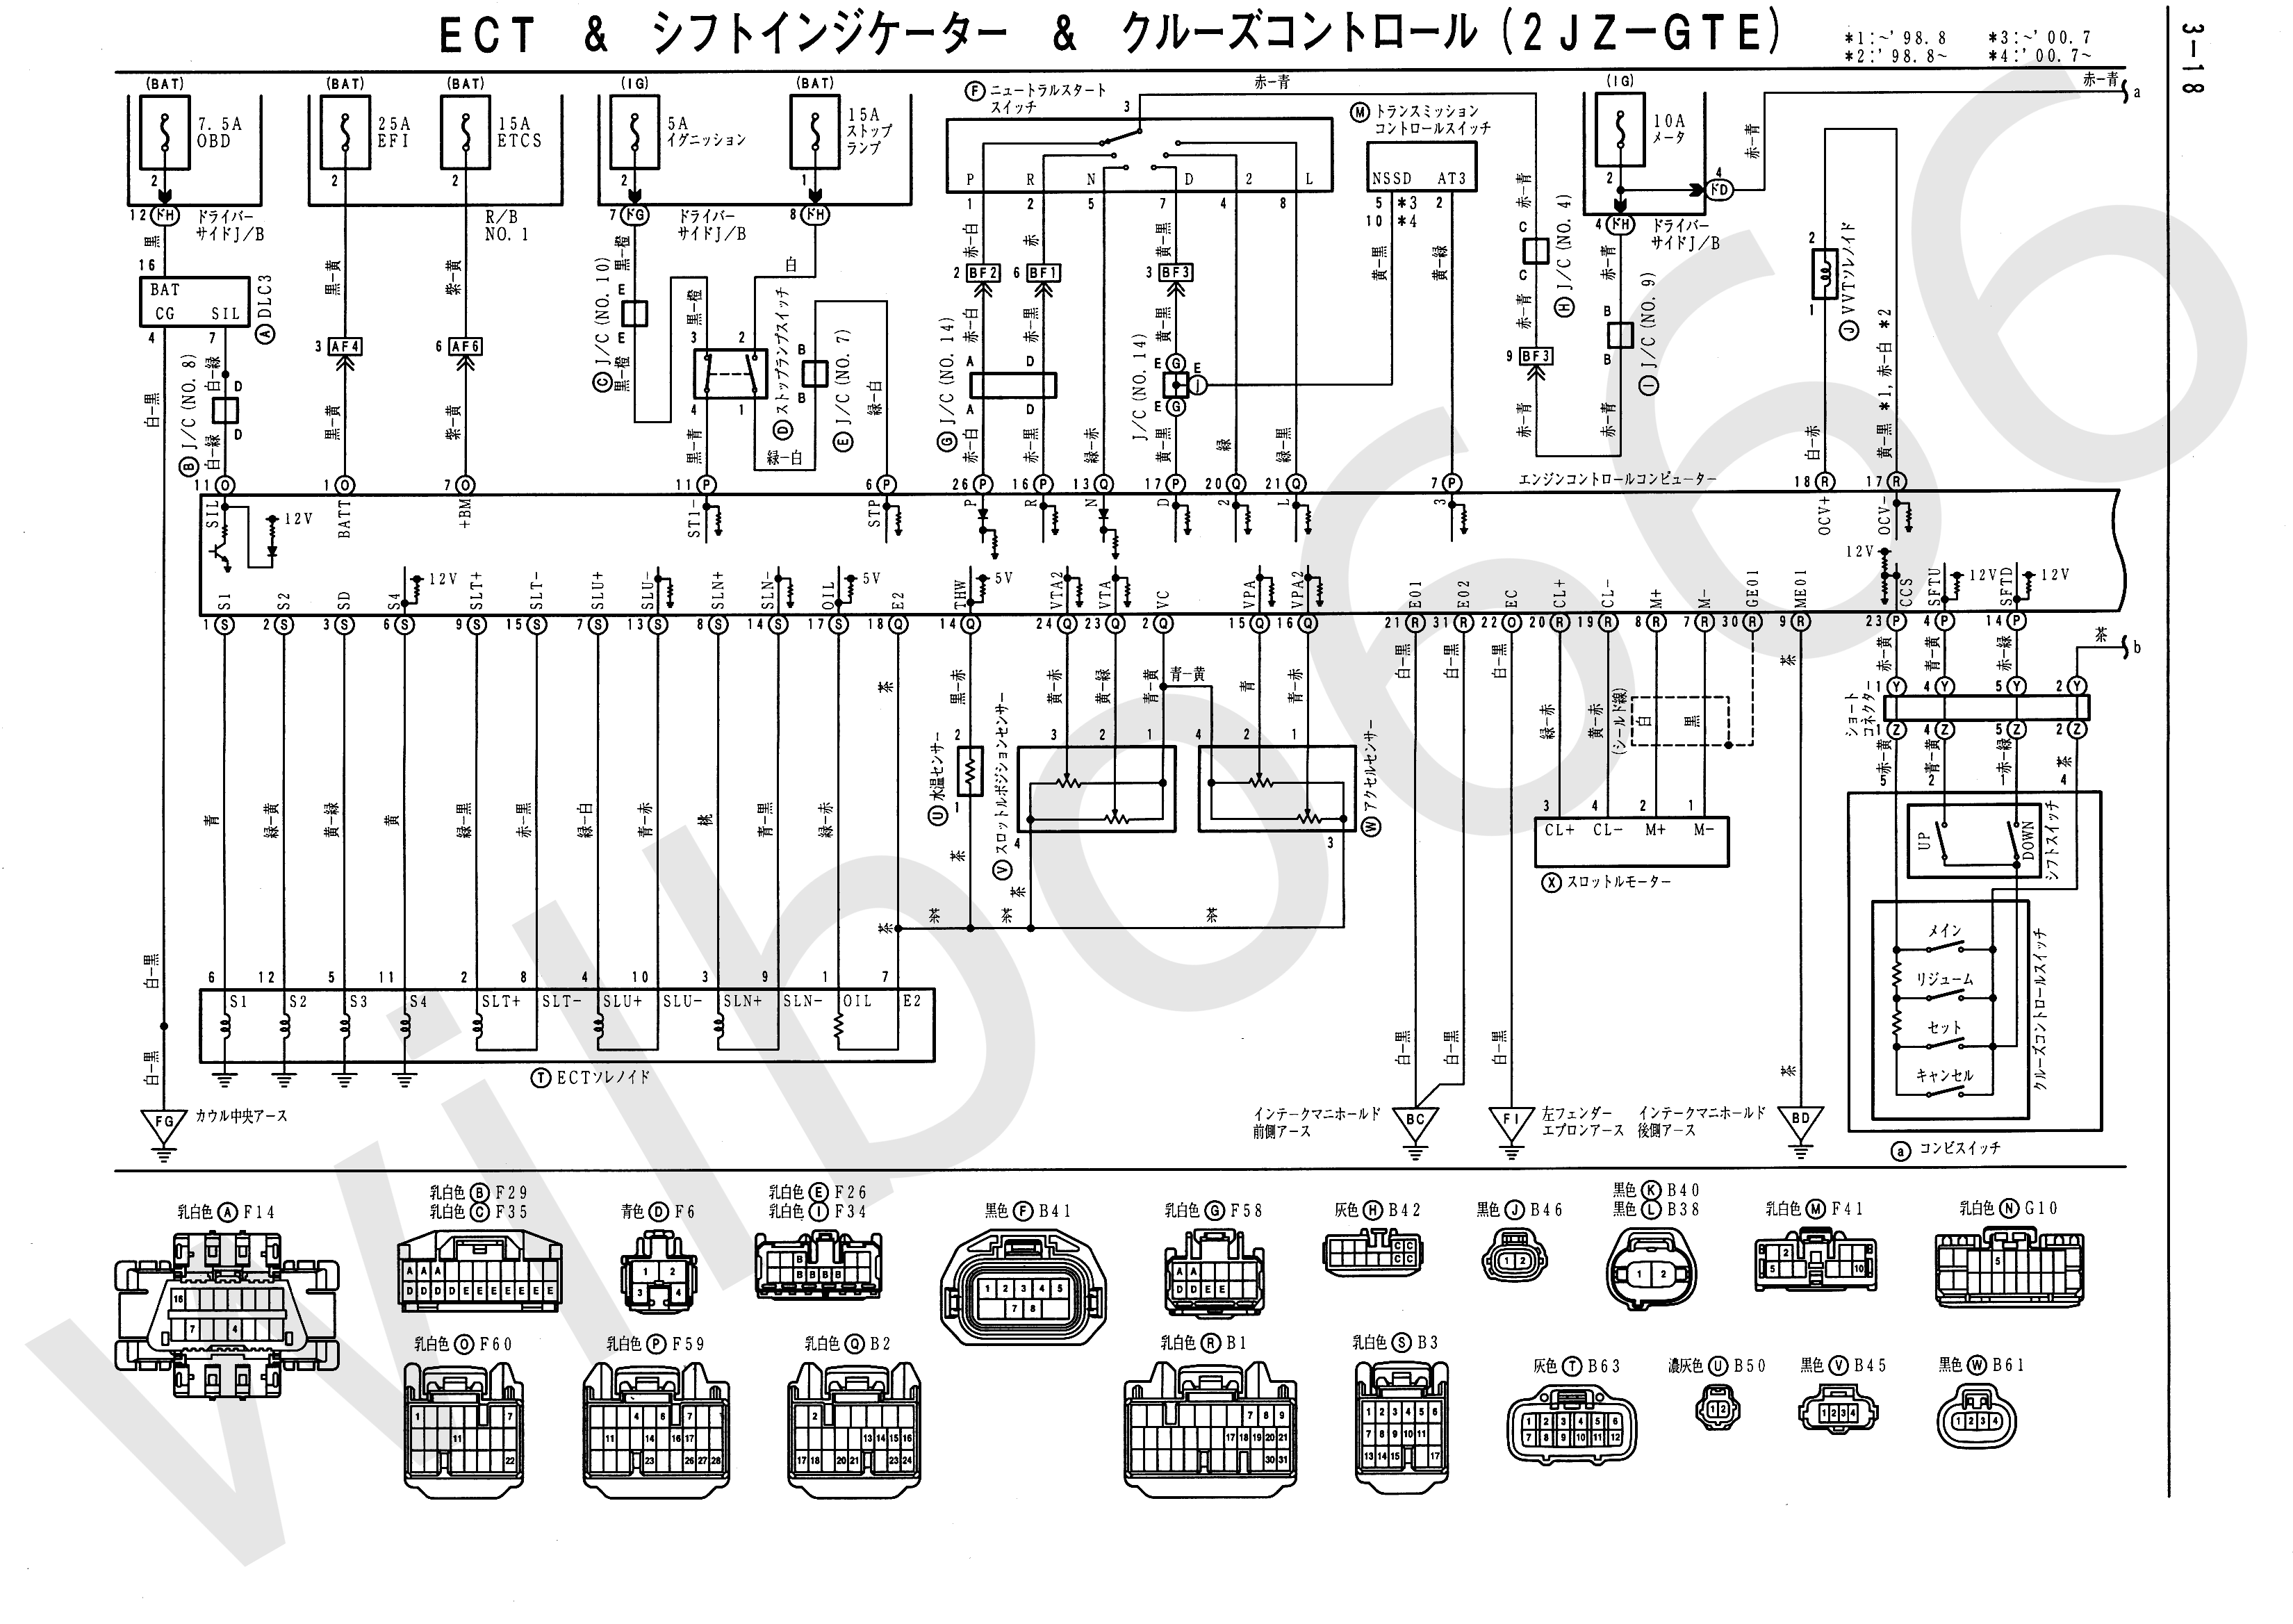 JZS161 Electrical Wiring Diagram 6748505 3 18 wilbo666 2jz gte vvti jzs161 aristo engine wiring 2jz wiring diagram at gsmportal.co